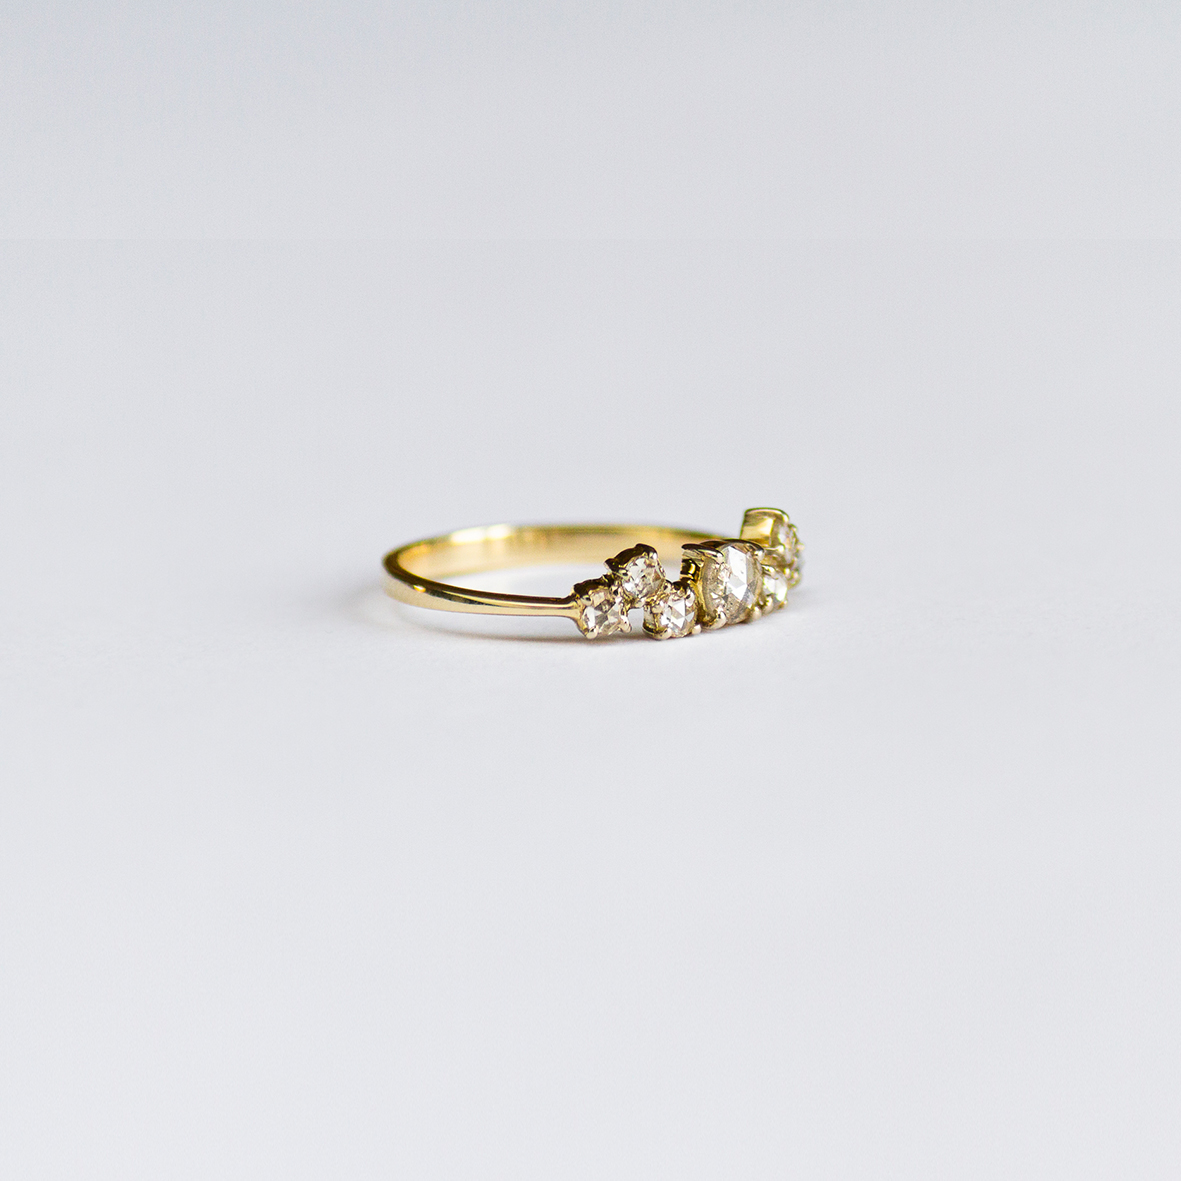 3. OONA_engagement_ficha2_wave diamonds ring